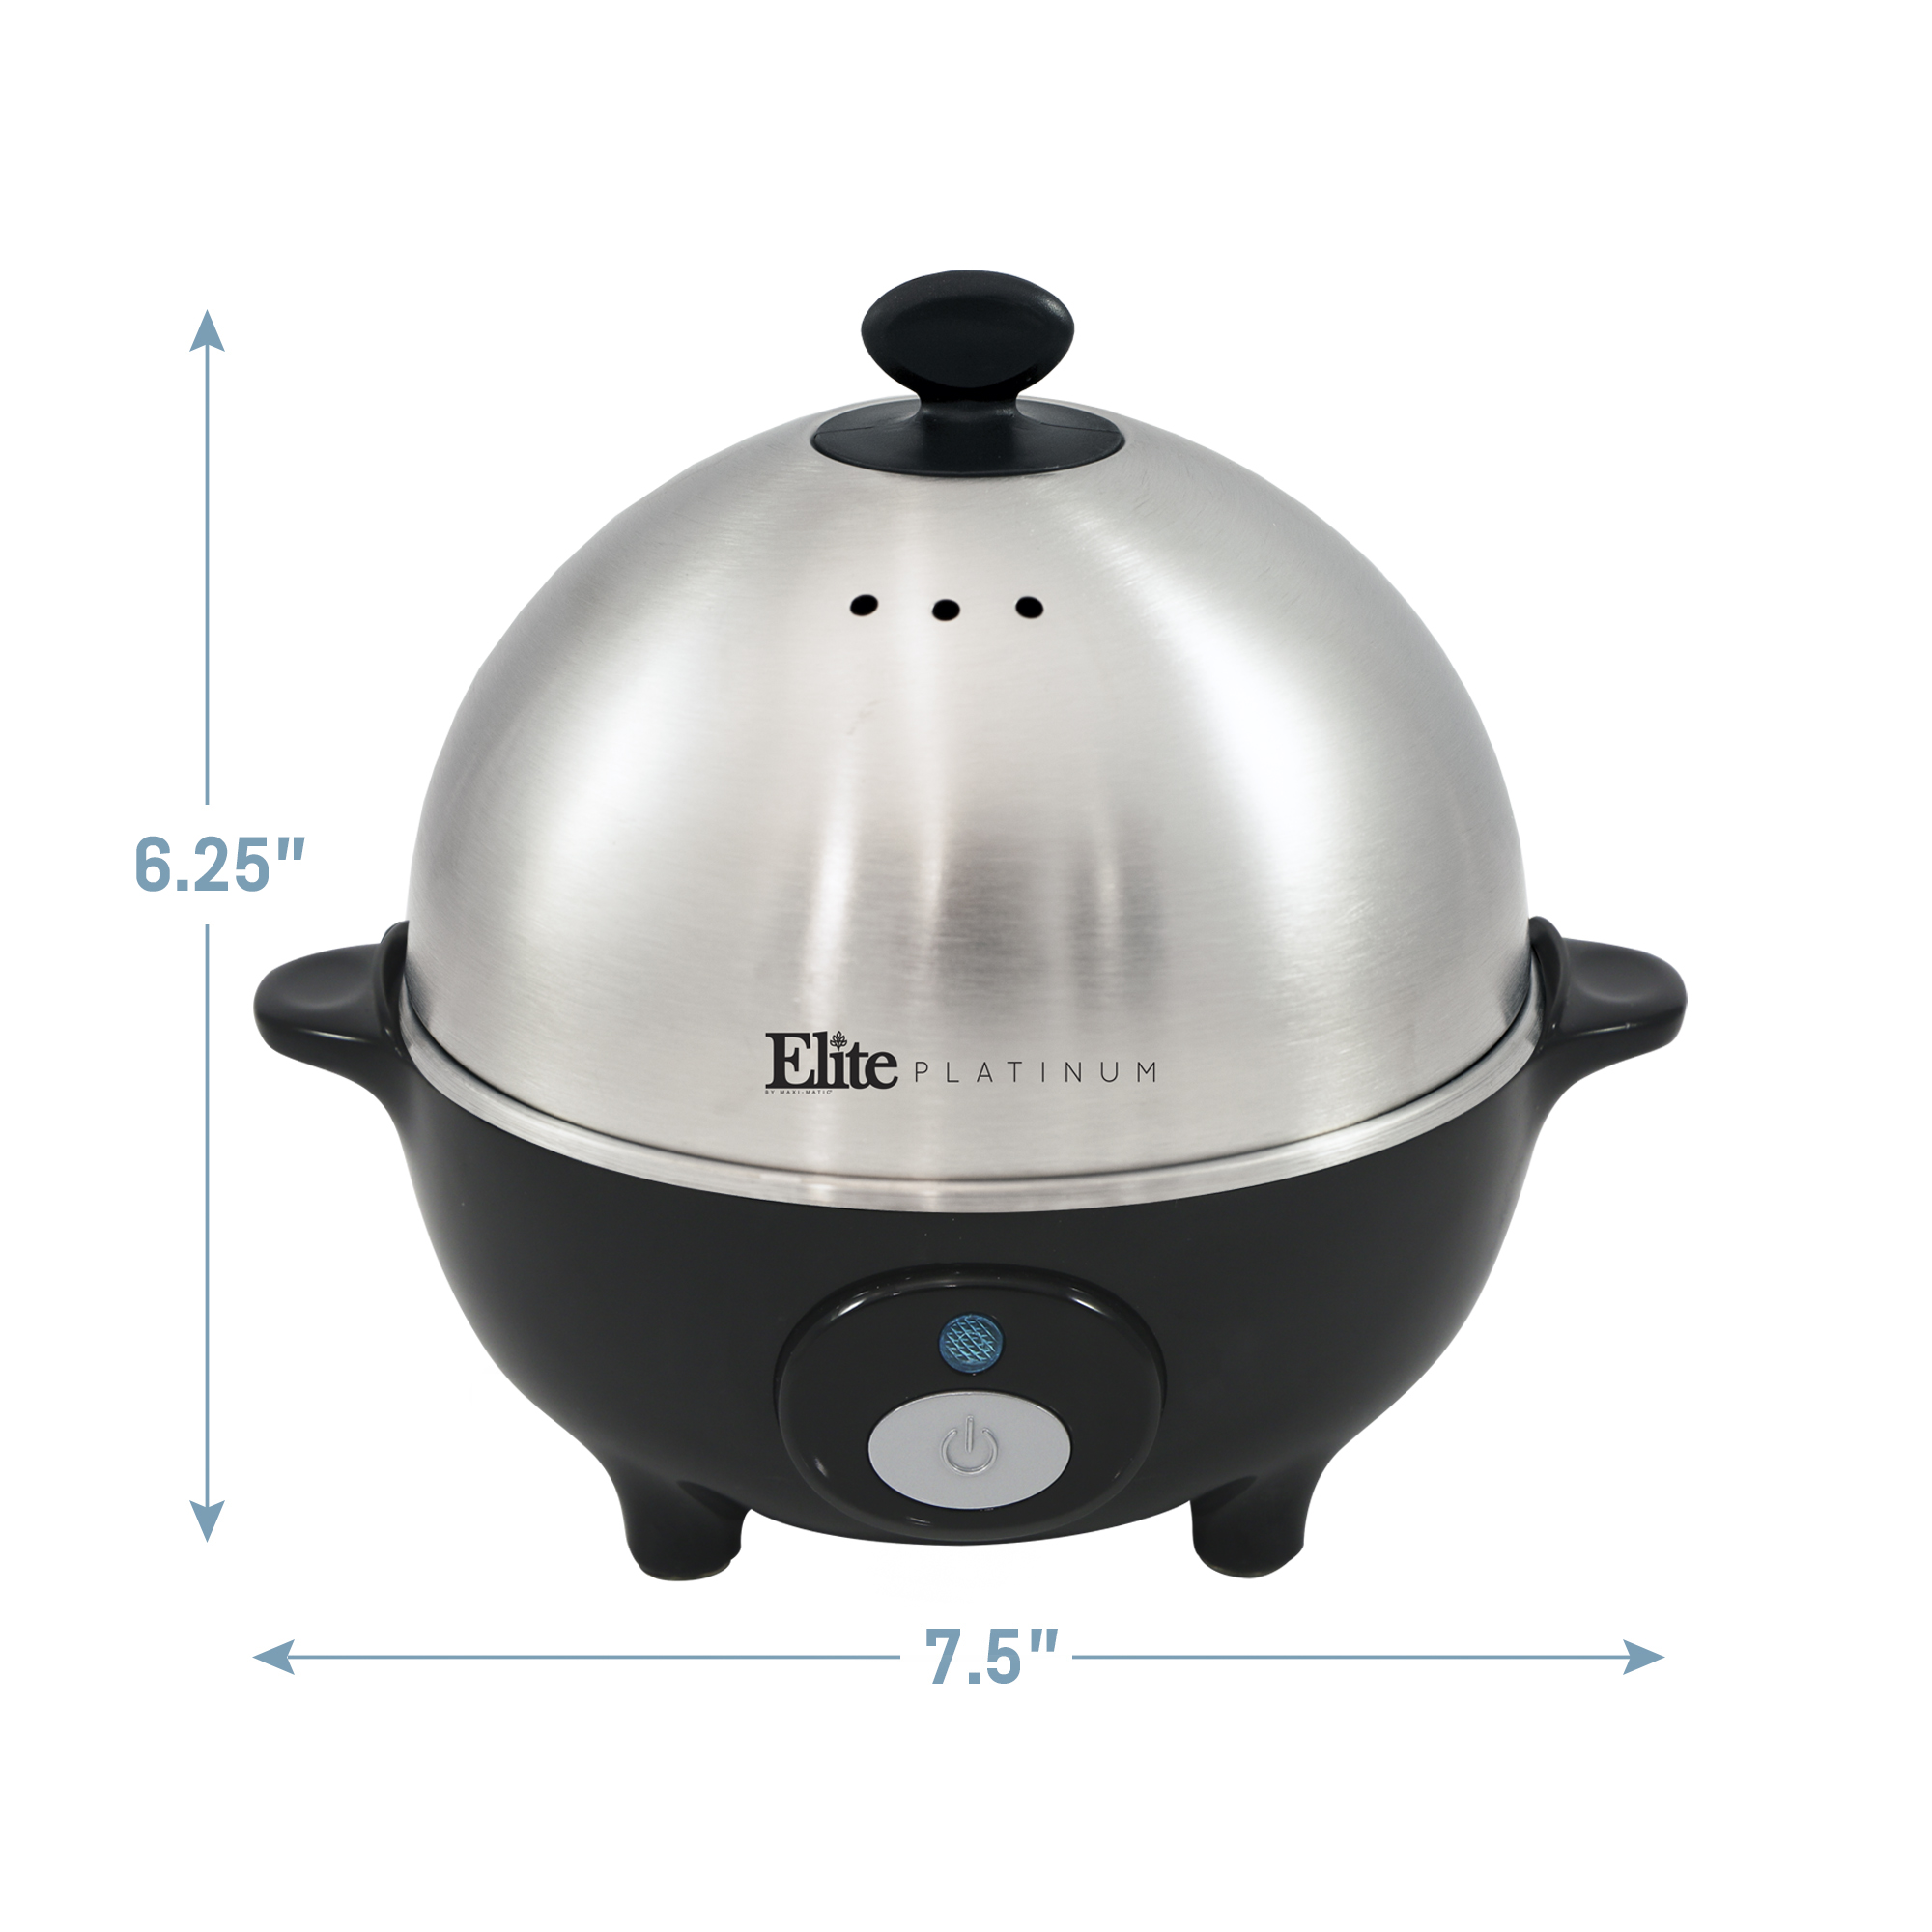 ELITE PLATINUM EGC-508 EGG COOKER STAINLESS STEEL